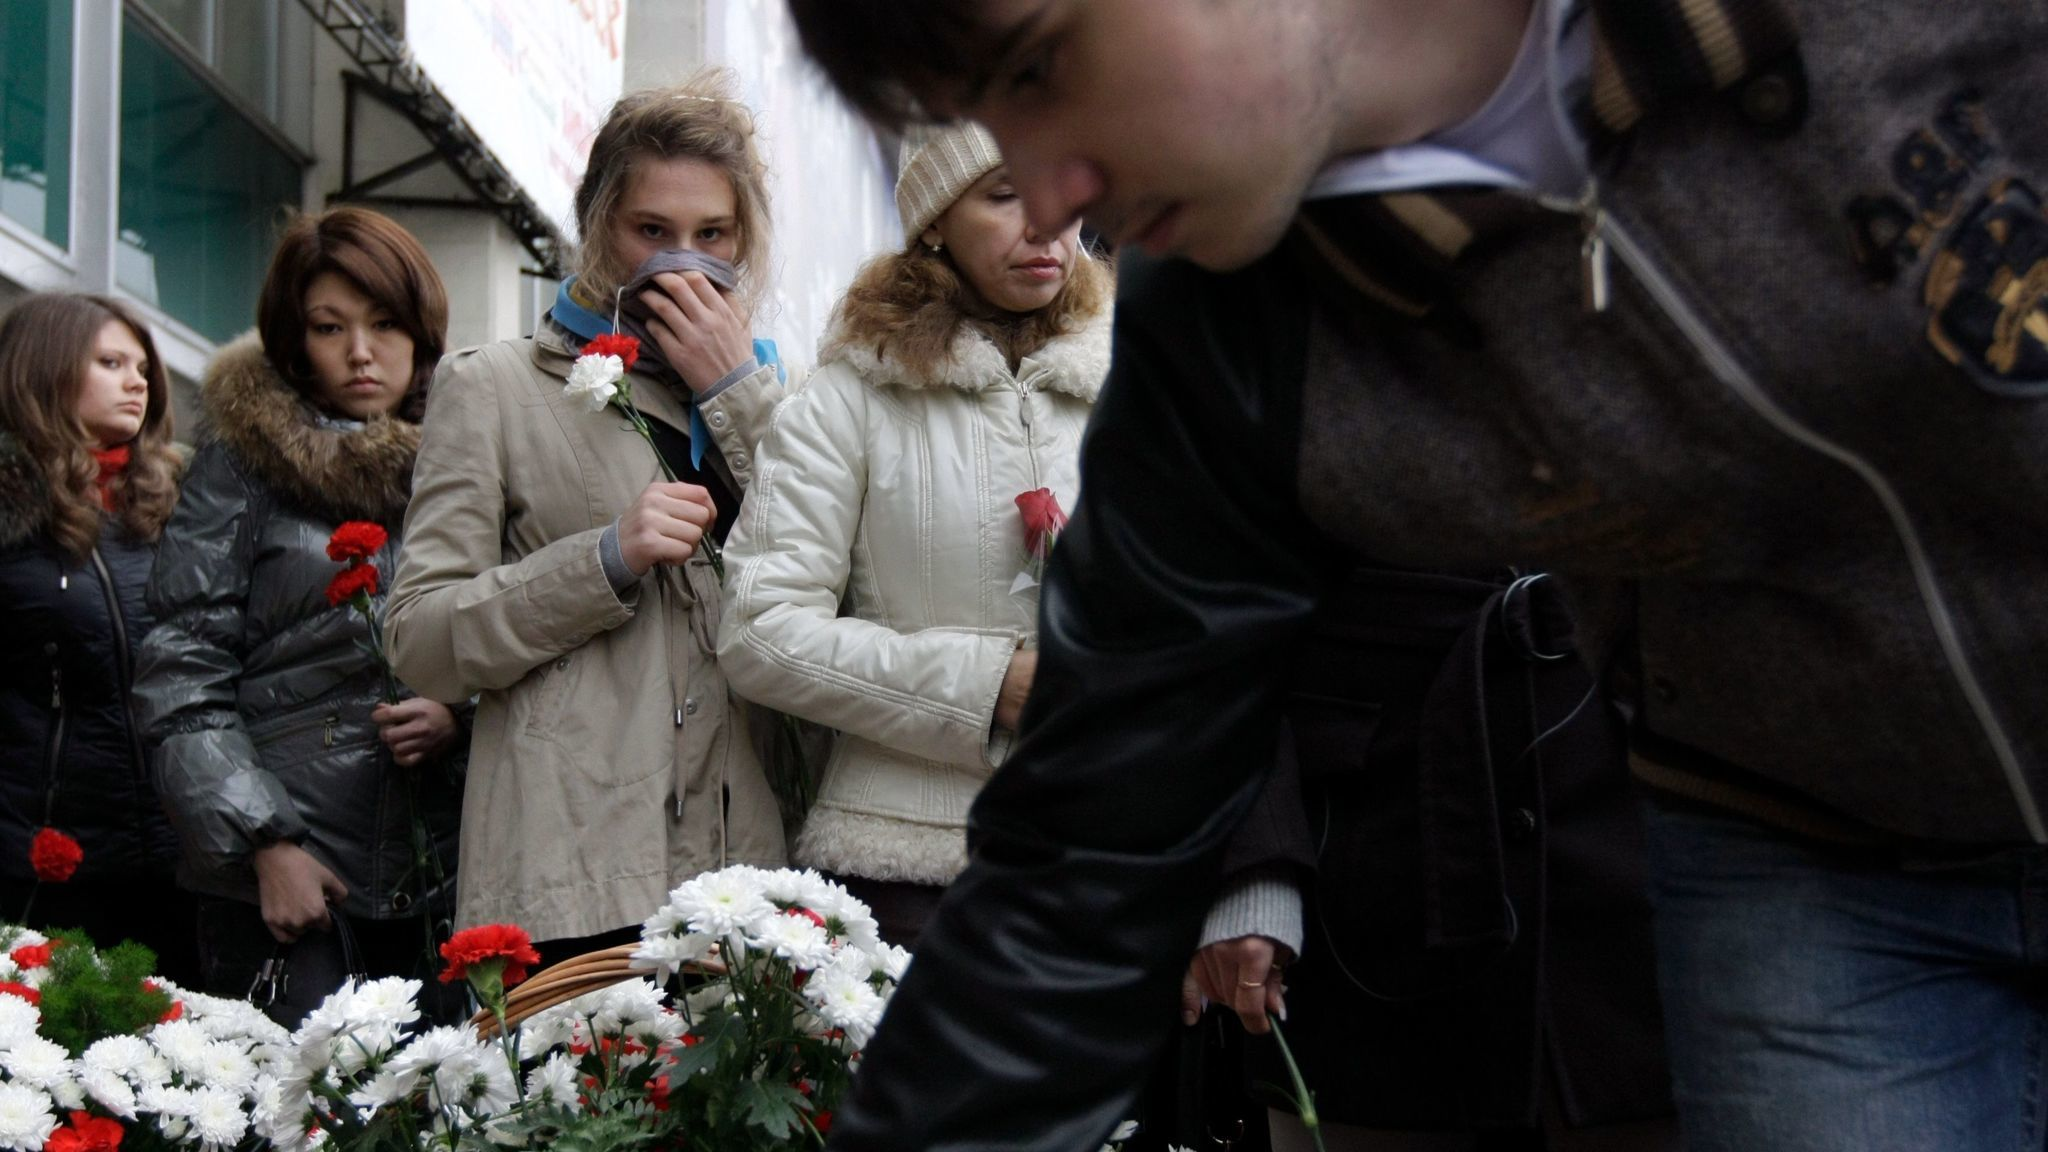 People lay flowers outside the Moscow theater that Chechen gunmen seized in 2002. (Anna Shevelyova / Associated Press)